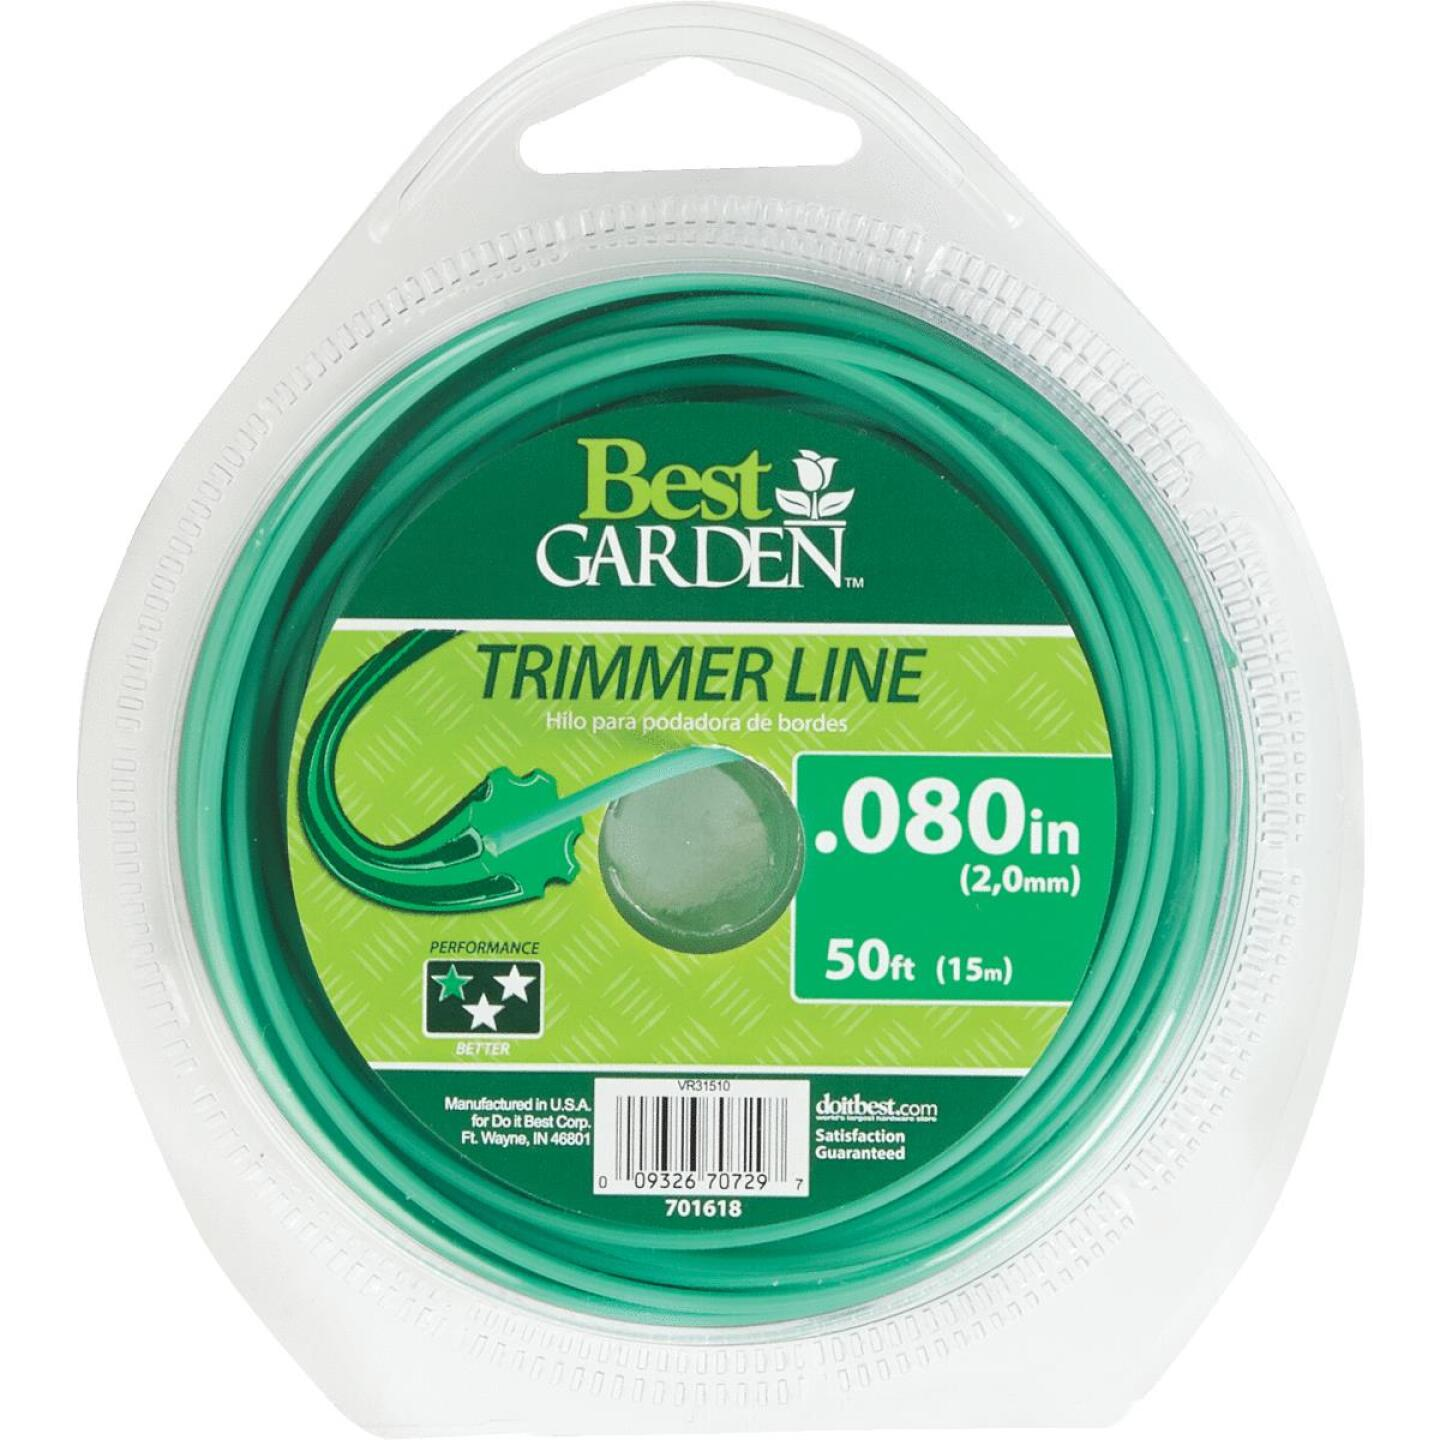 Best Garden 0.080 In. x 50 Ft. Round Trimmer Line Image 1